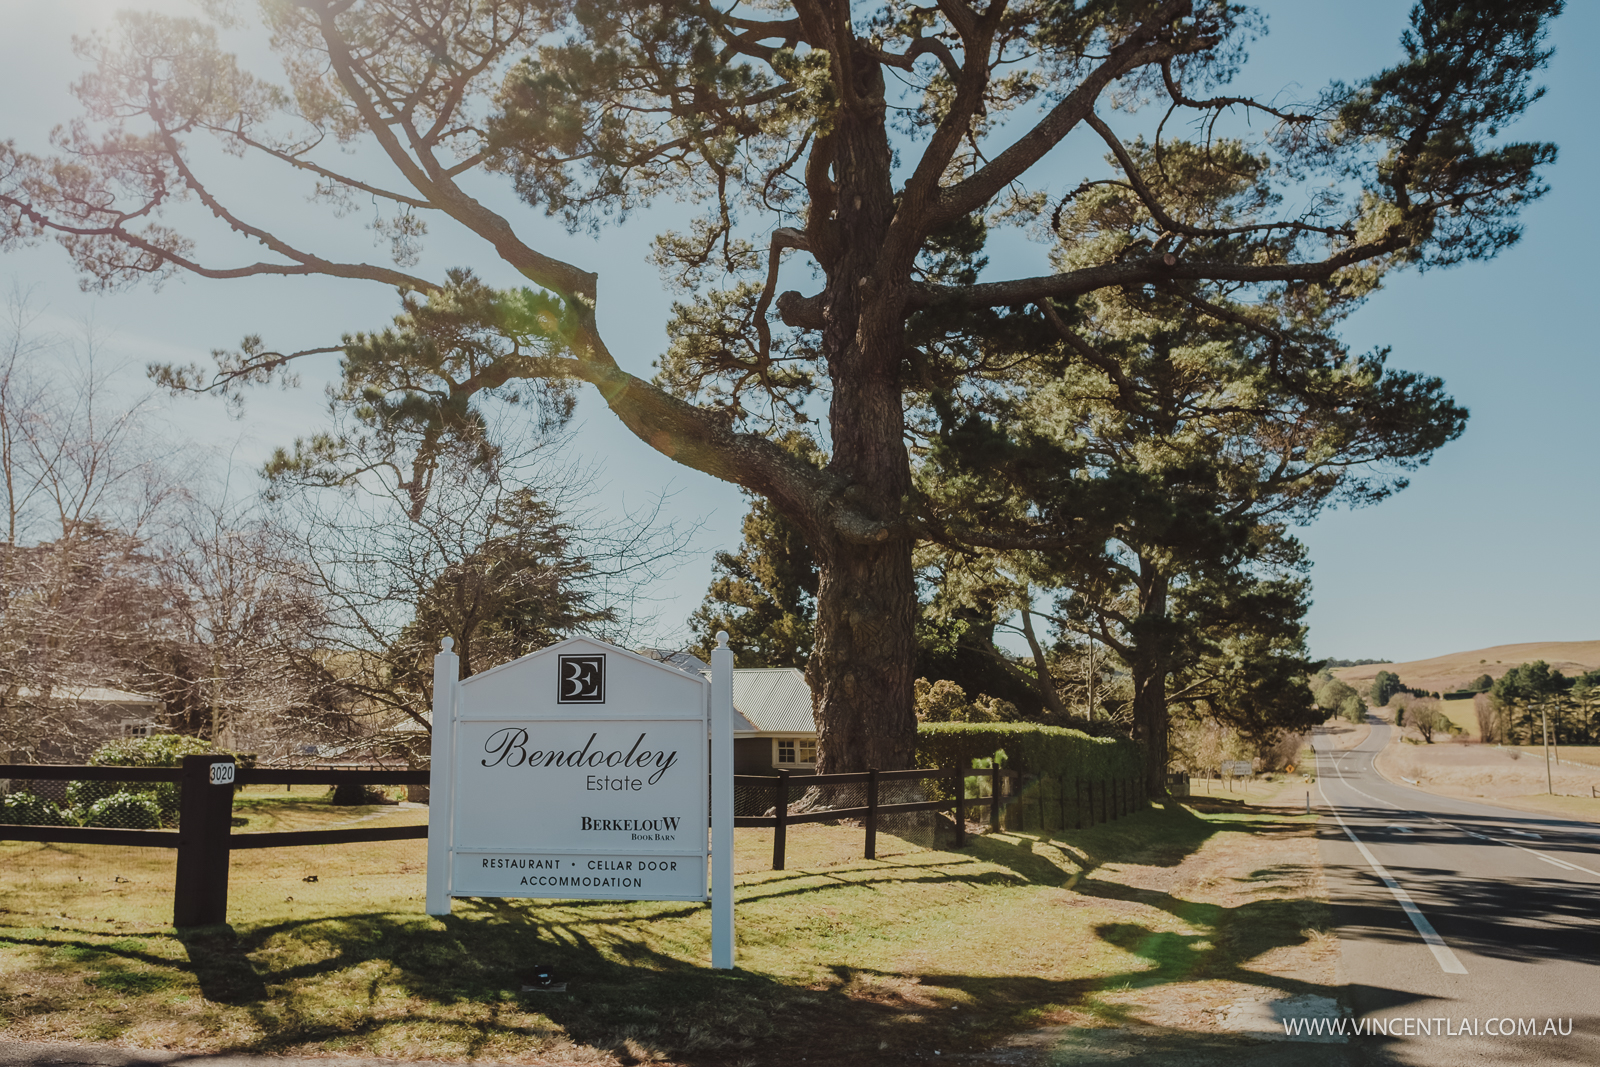 Southern Highlands Wedding at Bendooley Estate Berrima